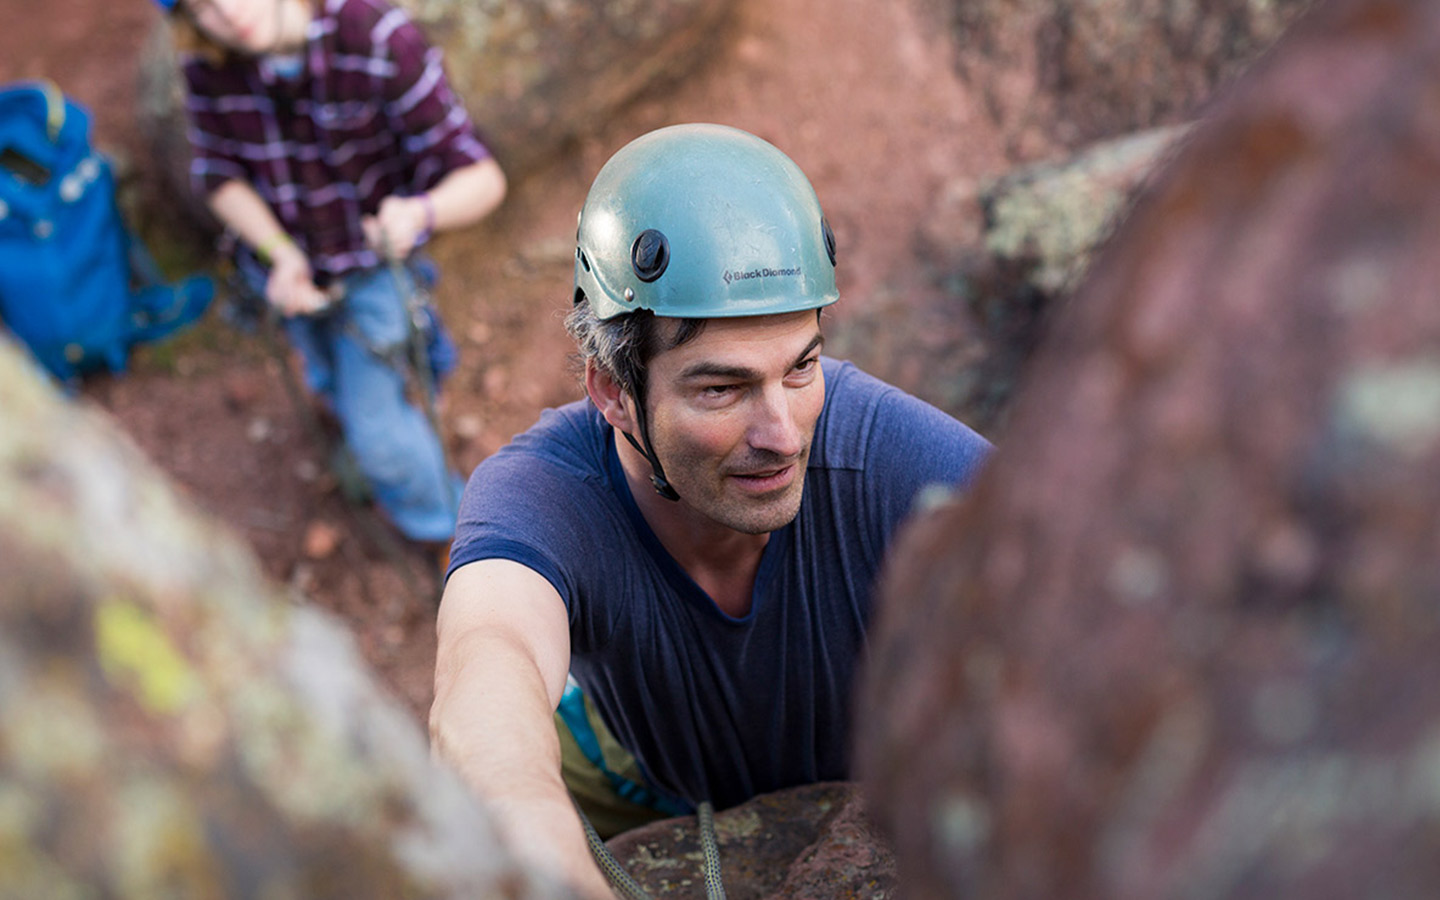 Cochlear recipient Mattias rock climbing with his family